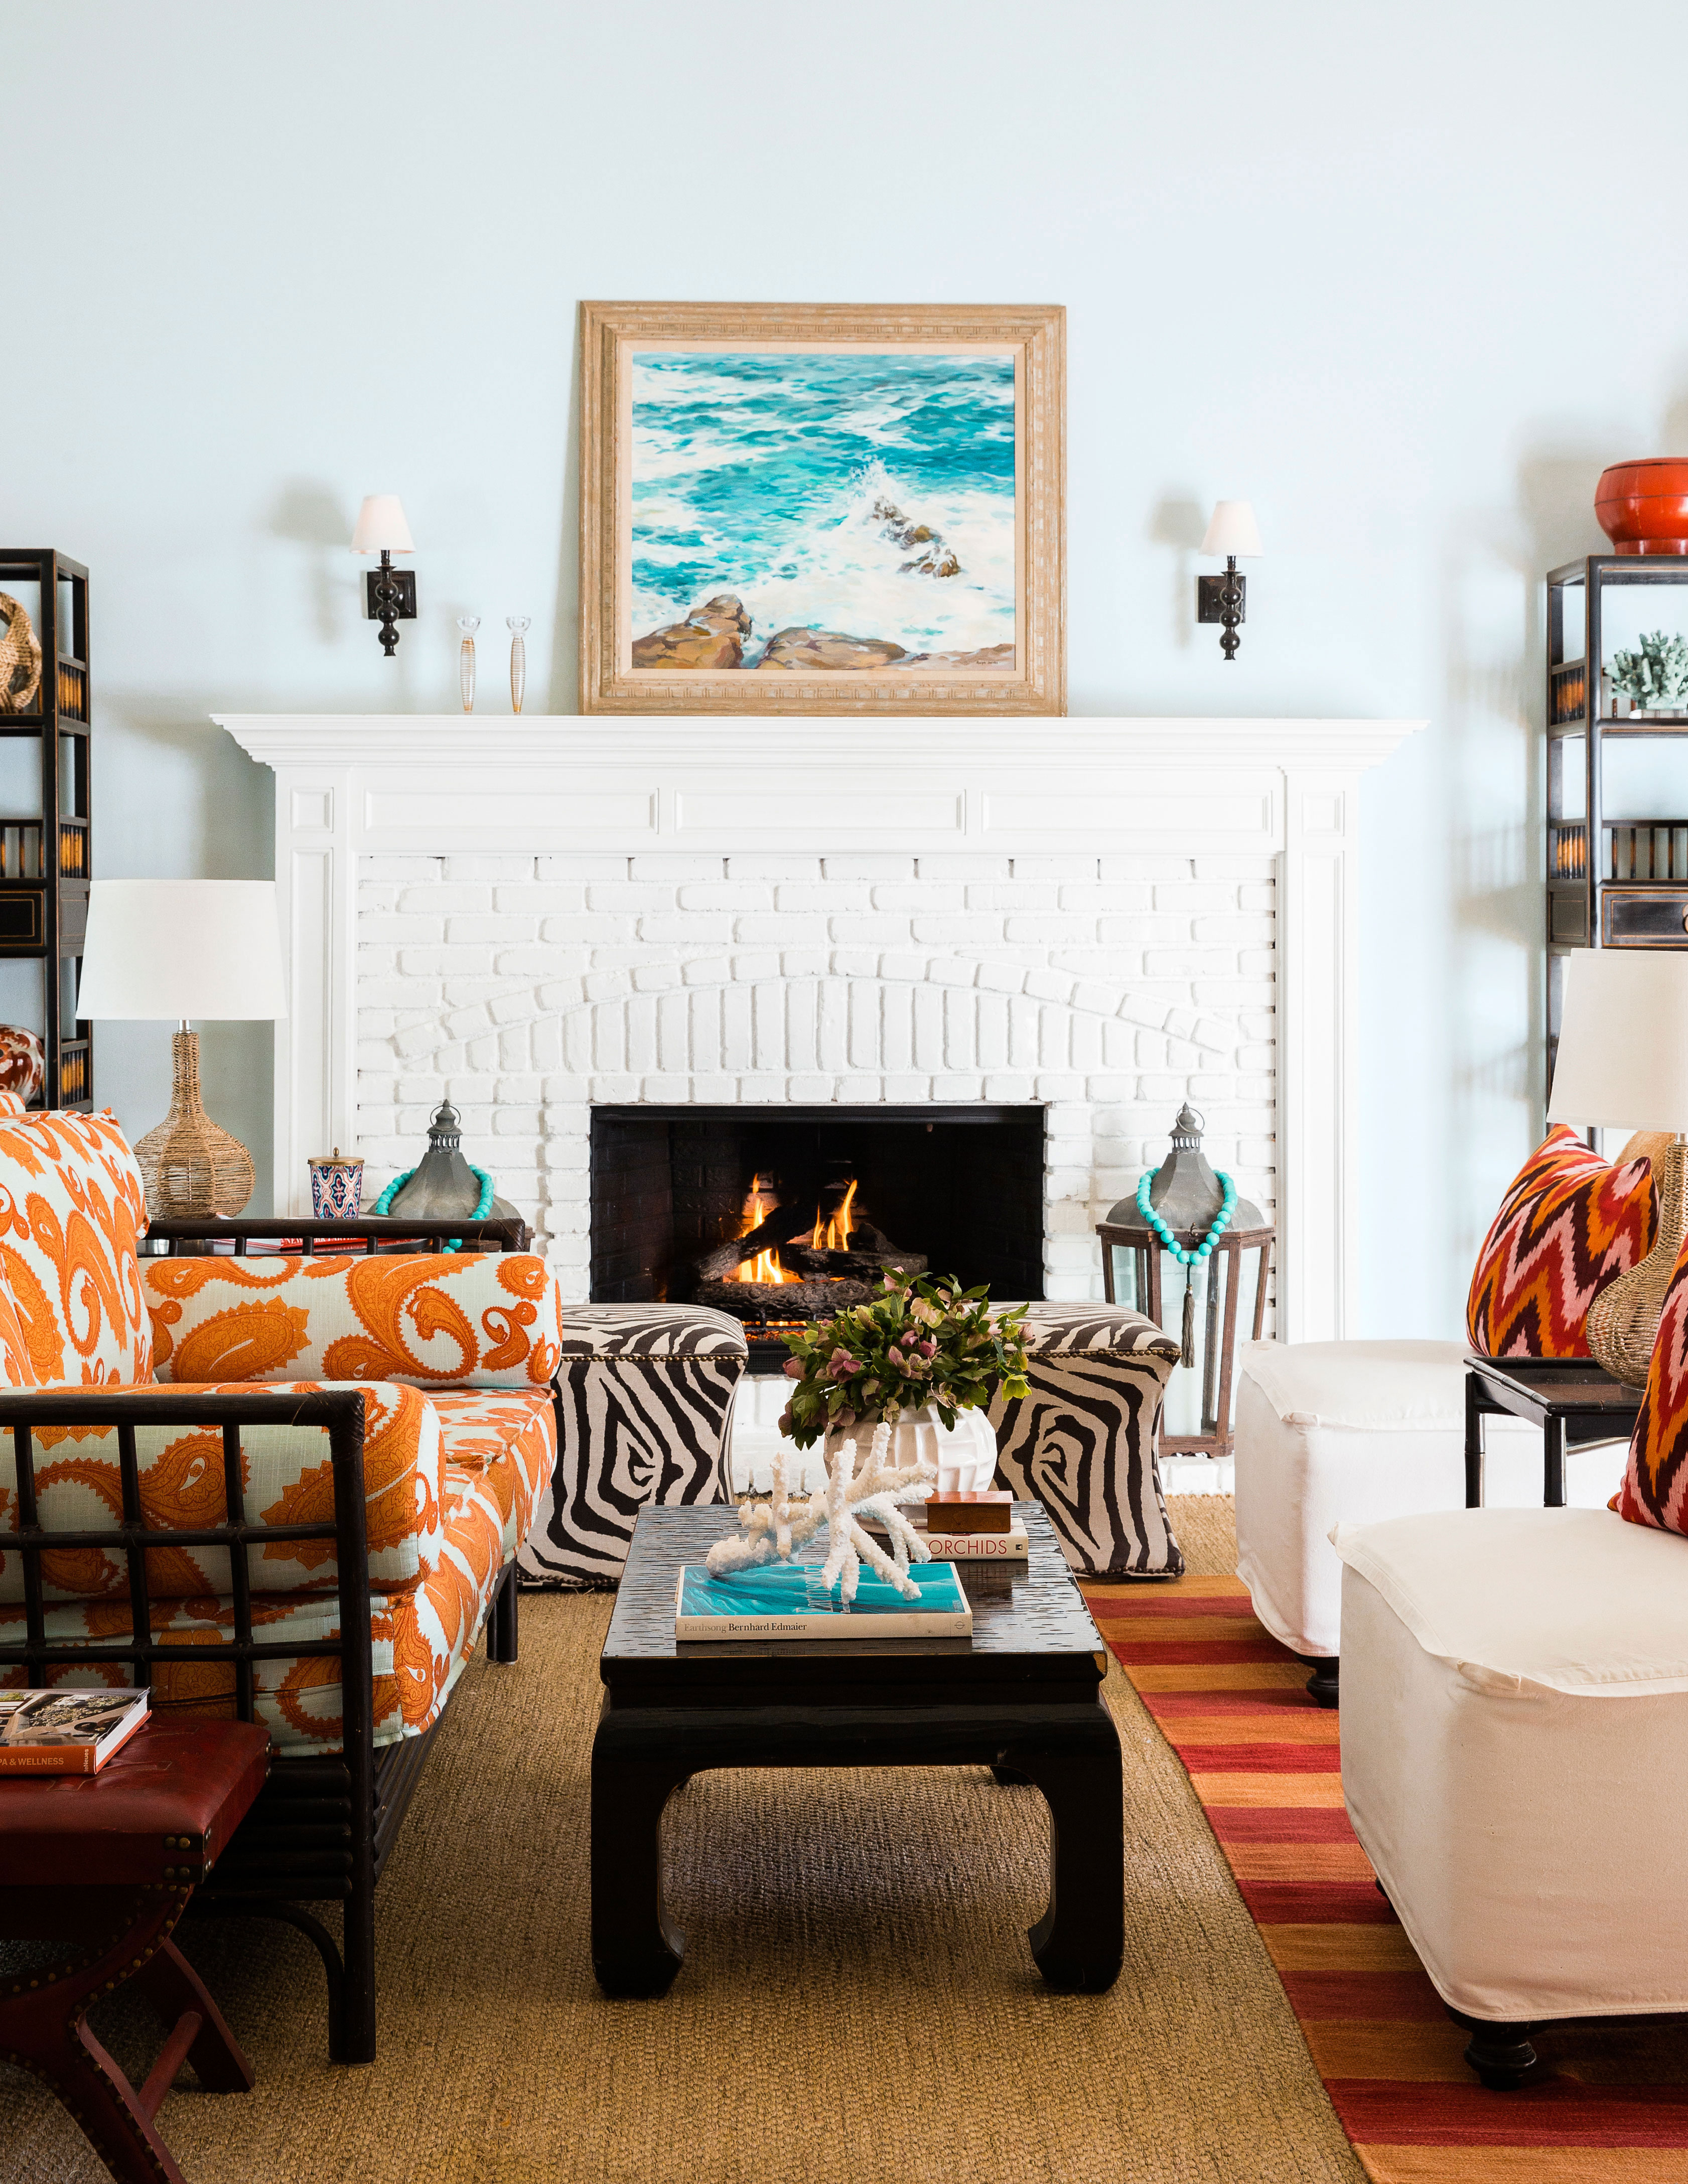 How to Style a Fireplace Mantel